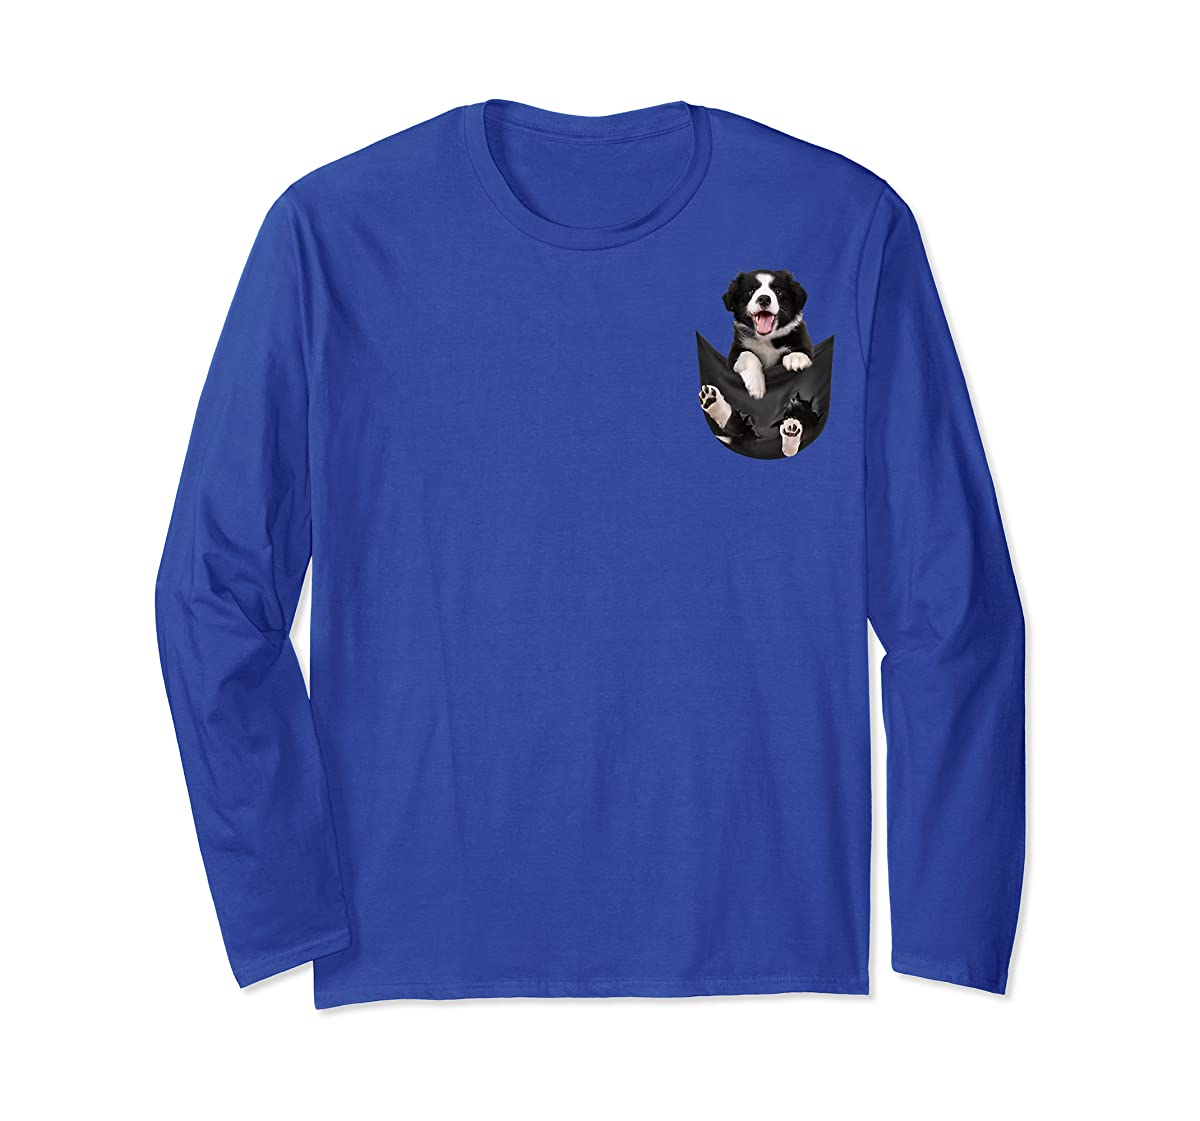 Gift dog funny cute shirt - Border Collie in pocket shirt T-Shirt-Long Sleeve-Royal